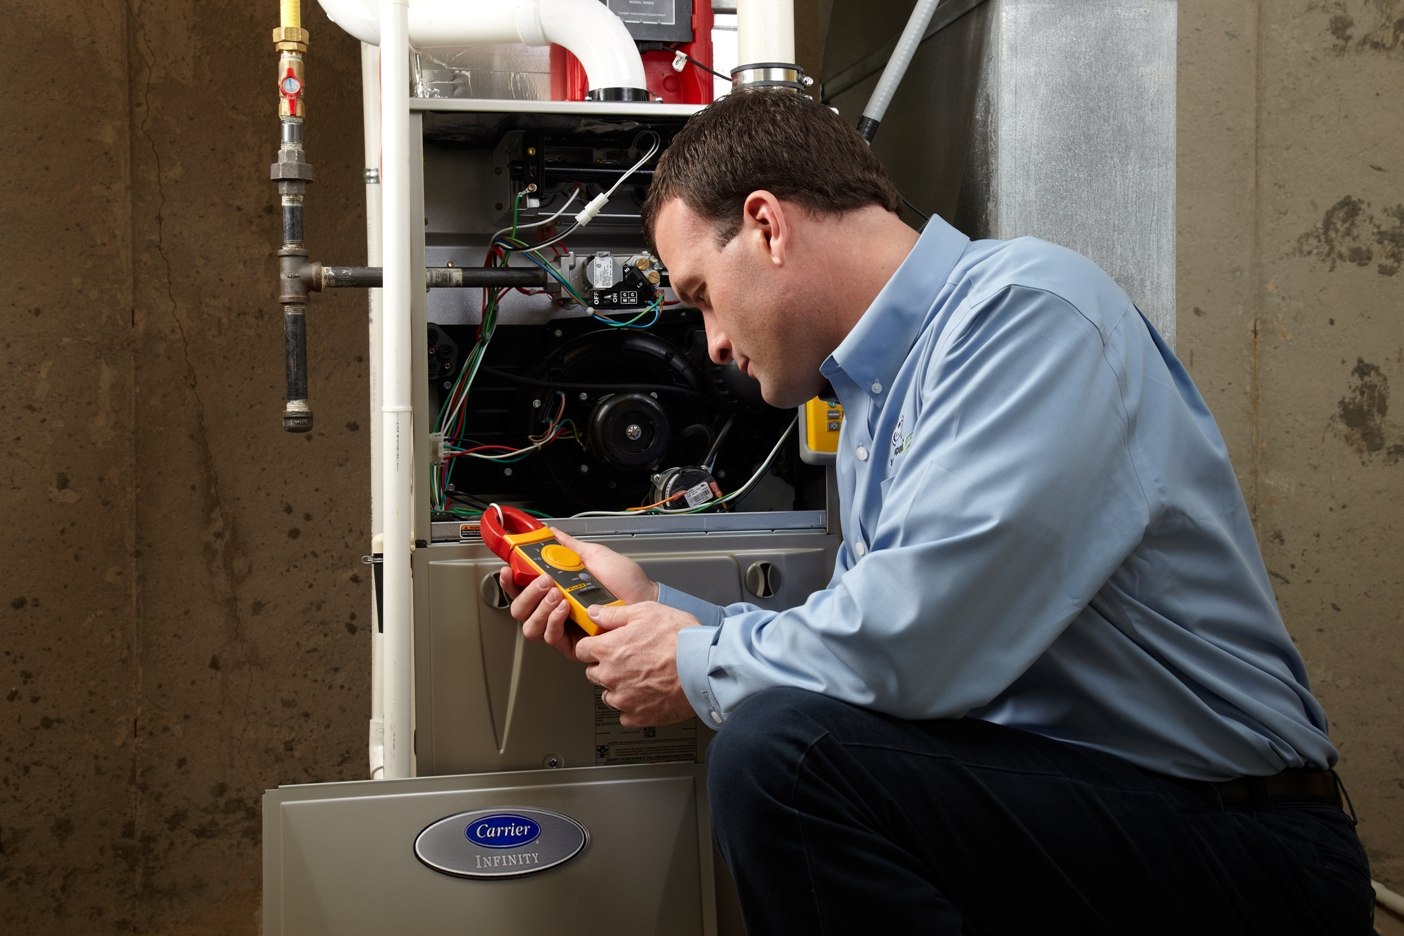 Furnace Service Ridgewood Nj Rite Rate Heating Amp Cooling